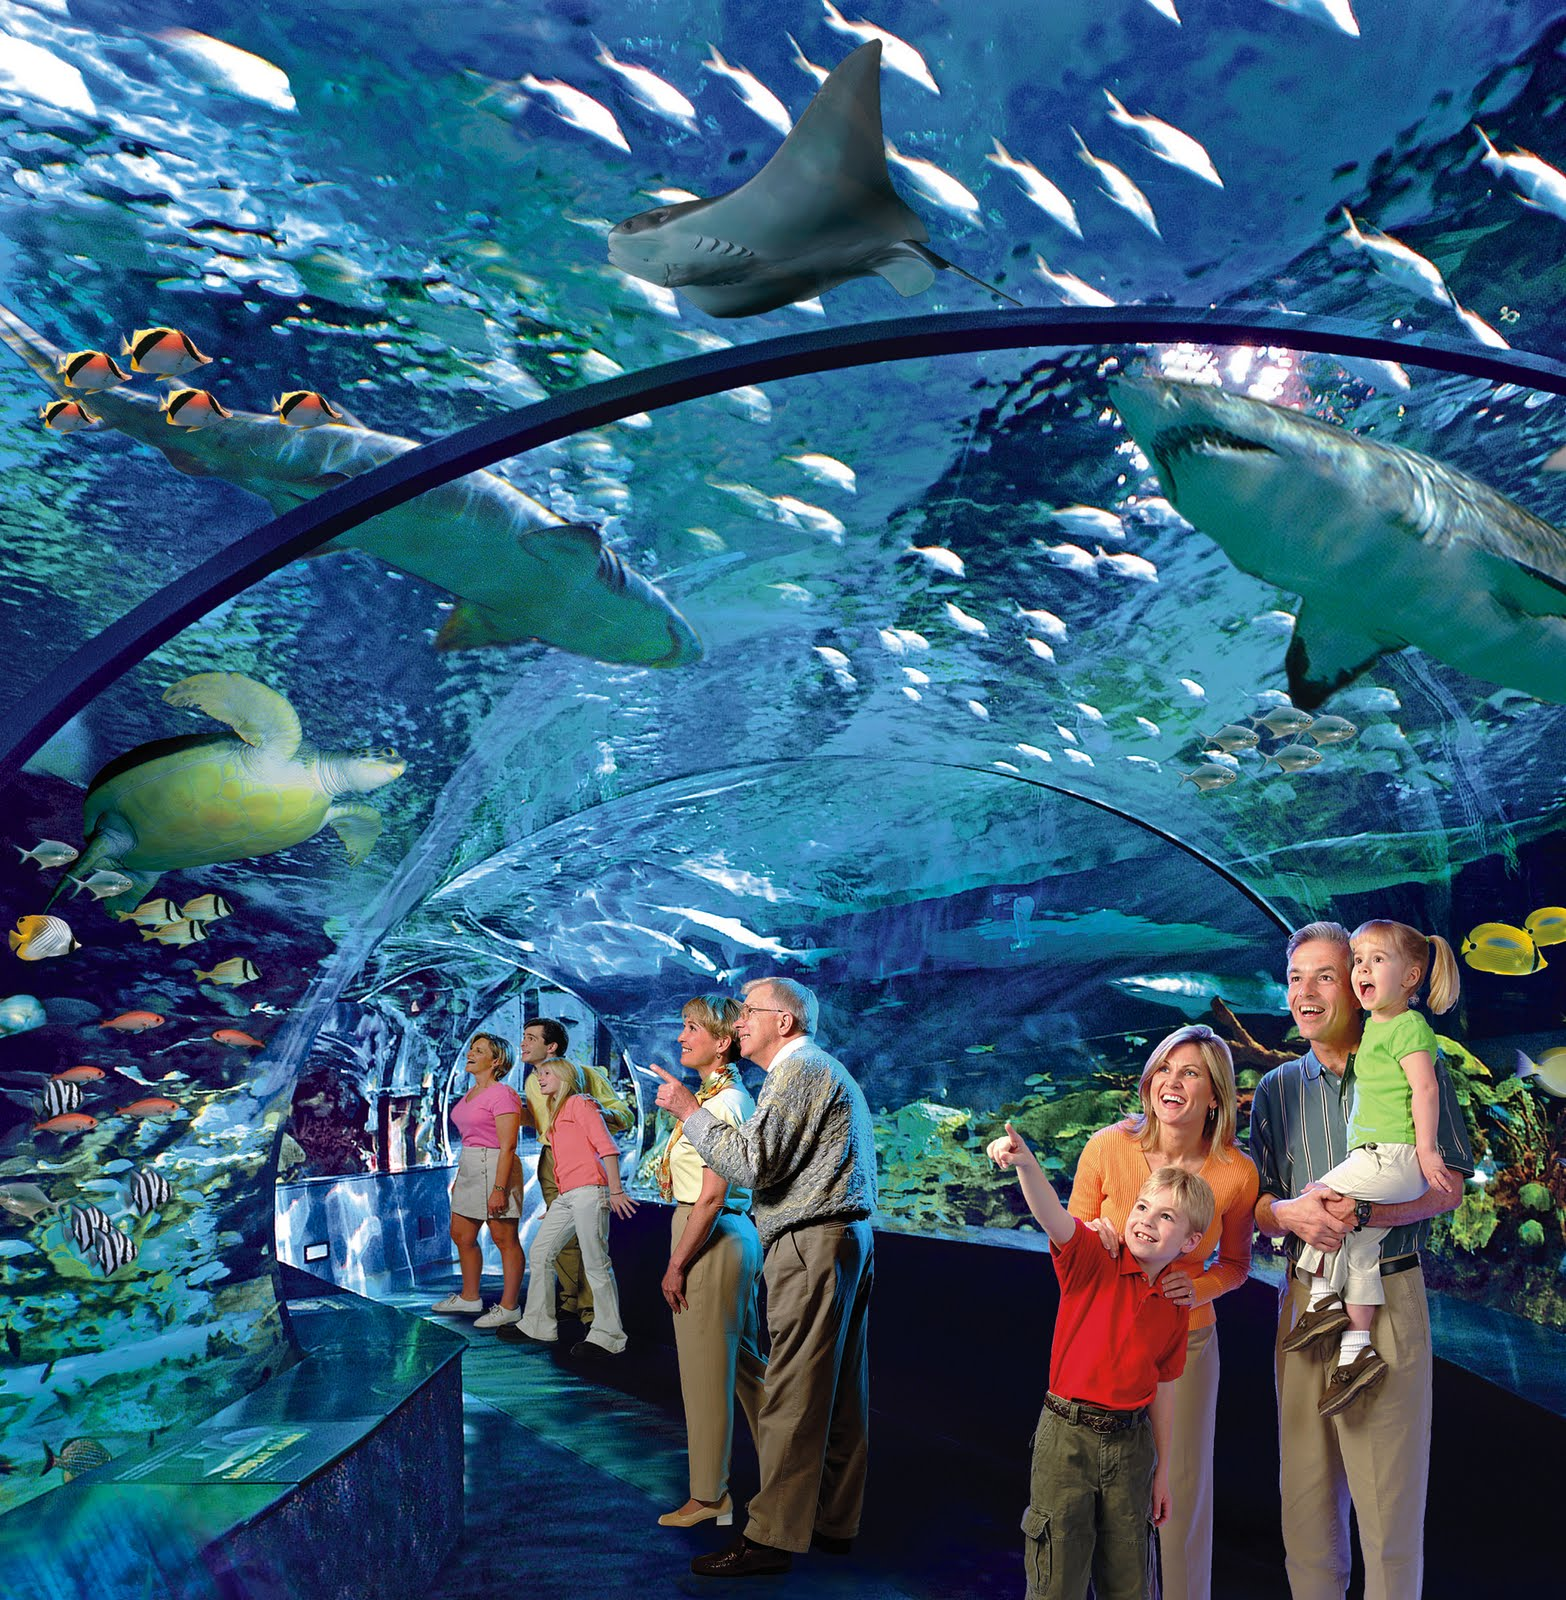 Believe it Or Not Toronto will soon have a Ripley's Aquarium